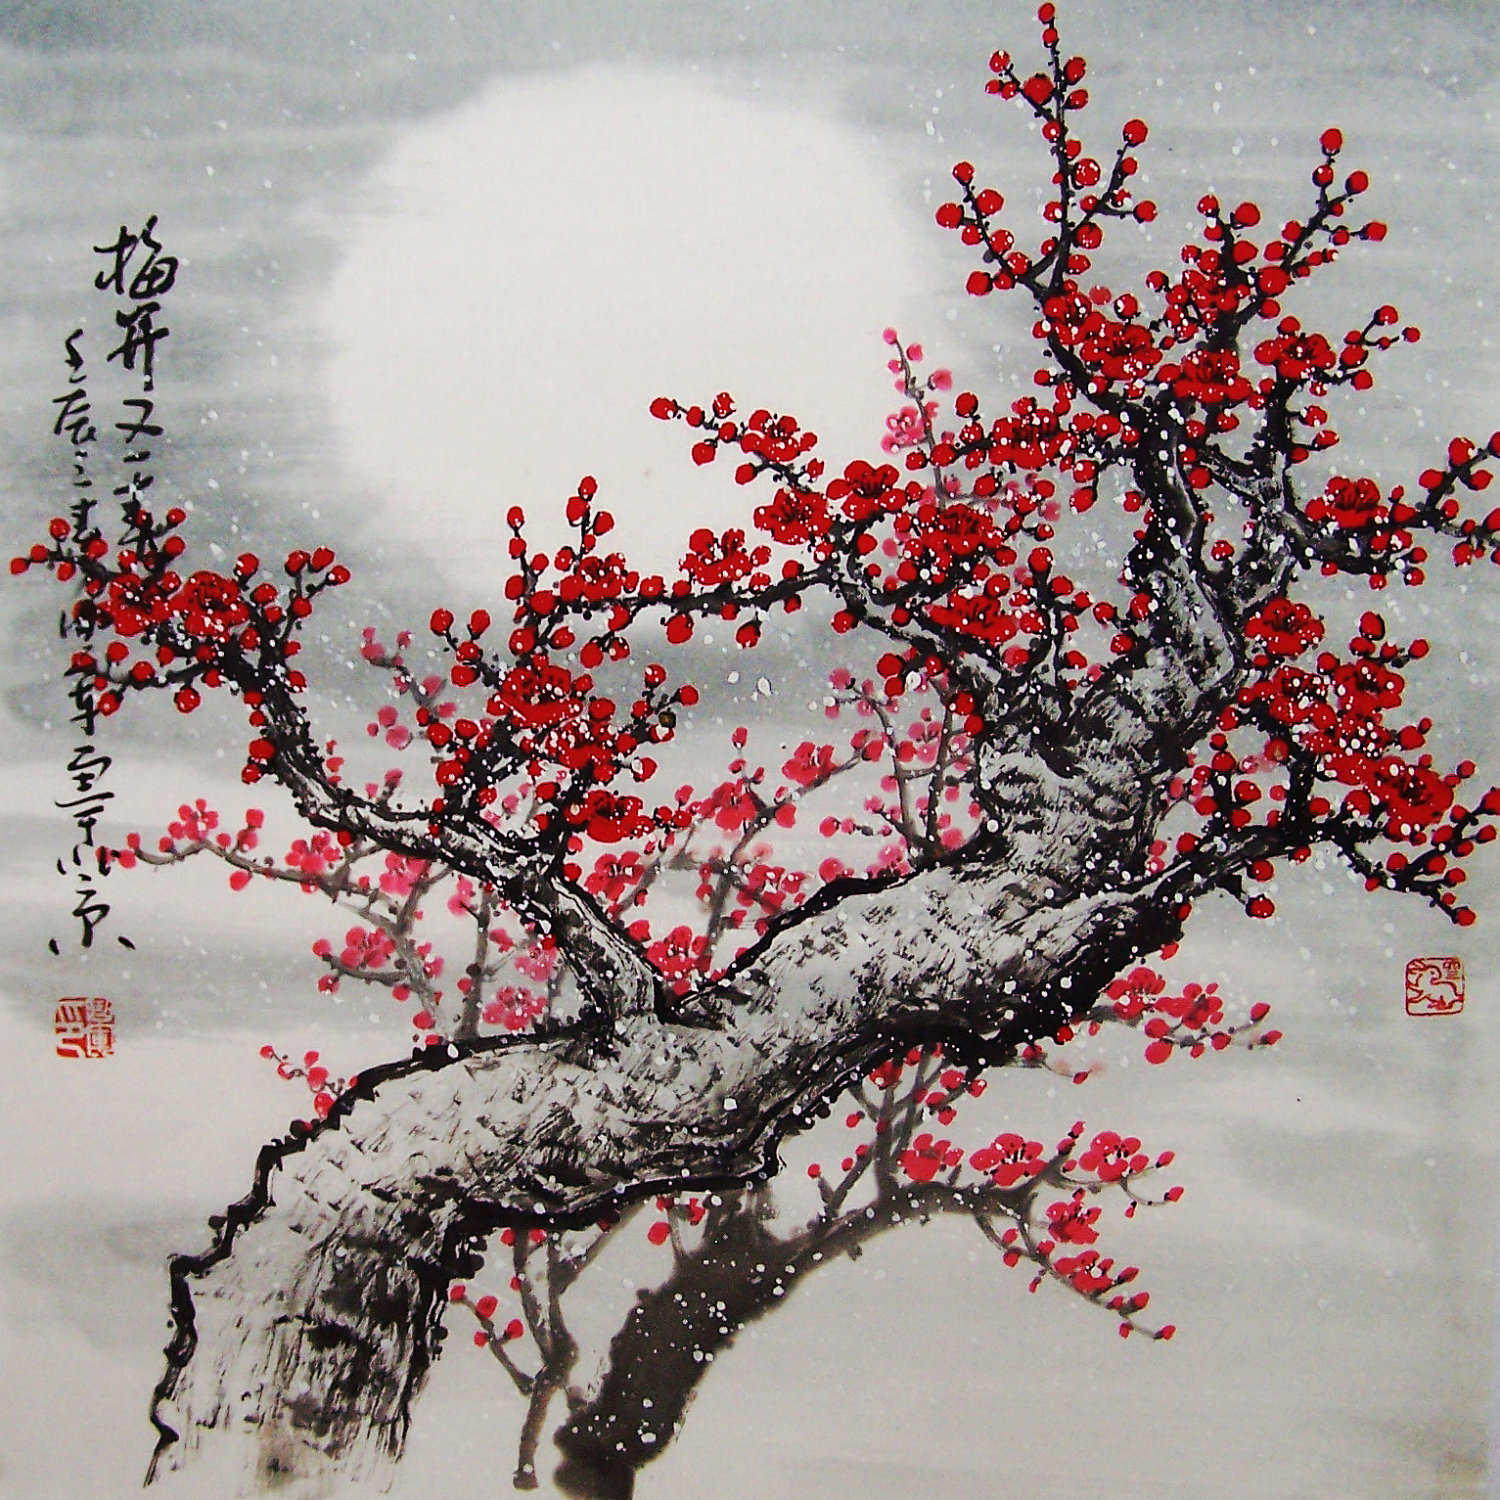 Chinese cherry blossoms art id 60886 art abyss for Cherry blossom mural works